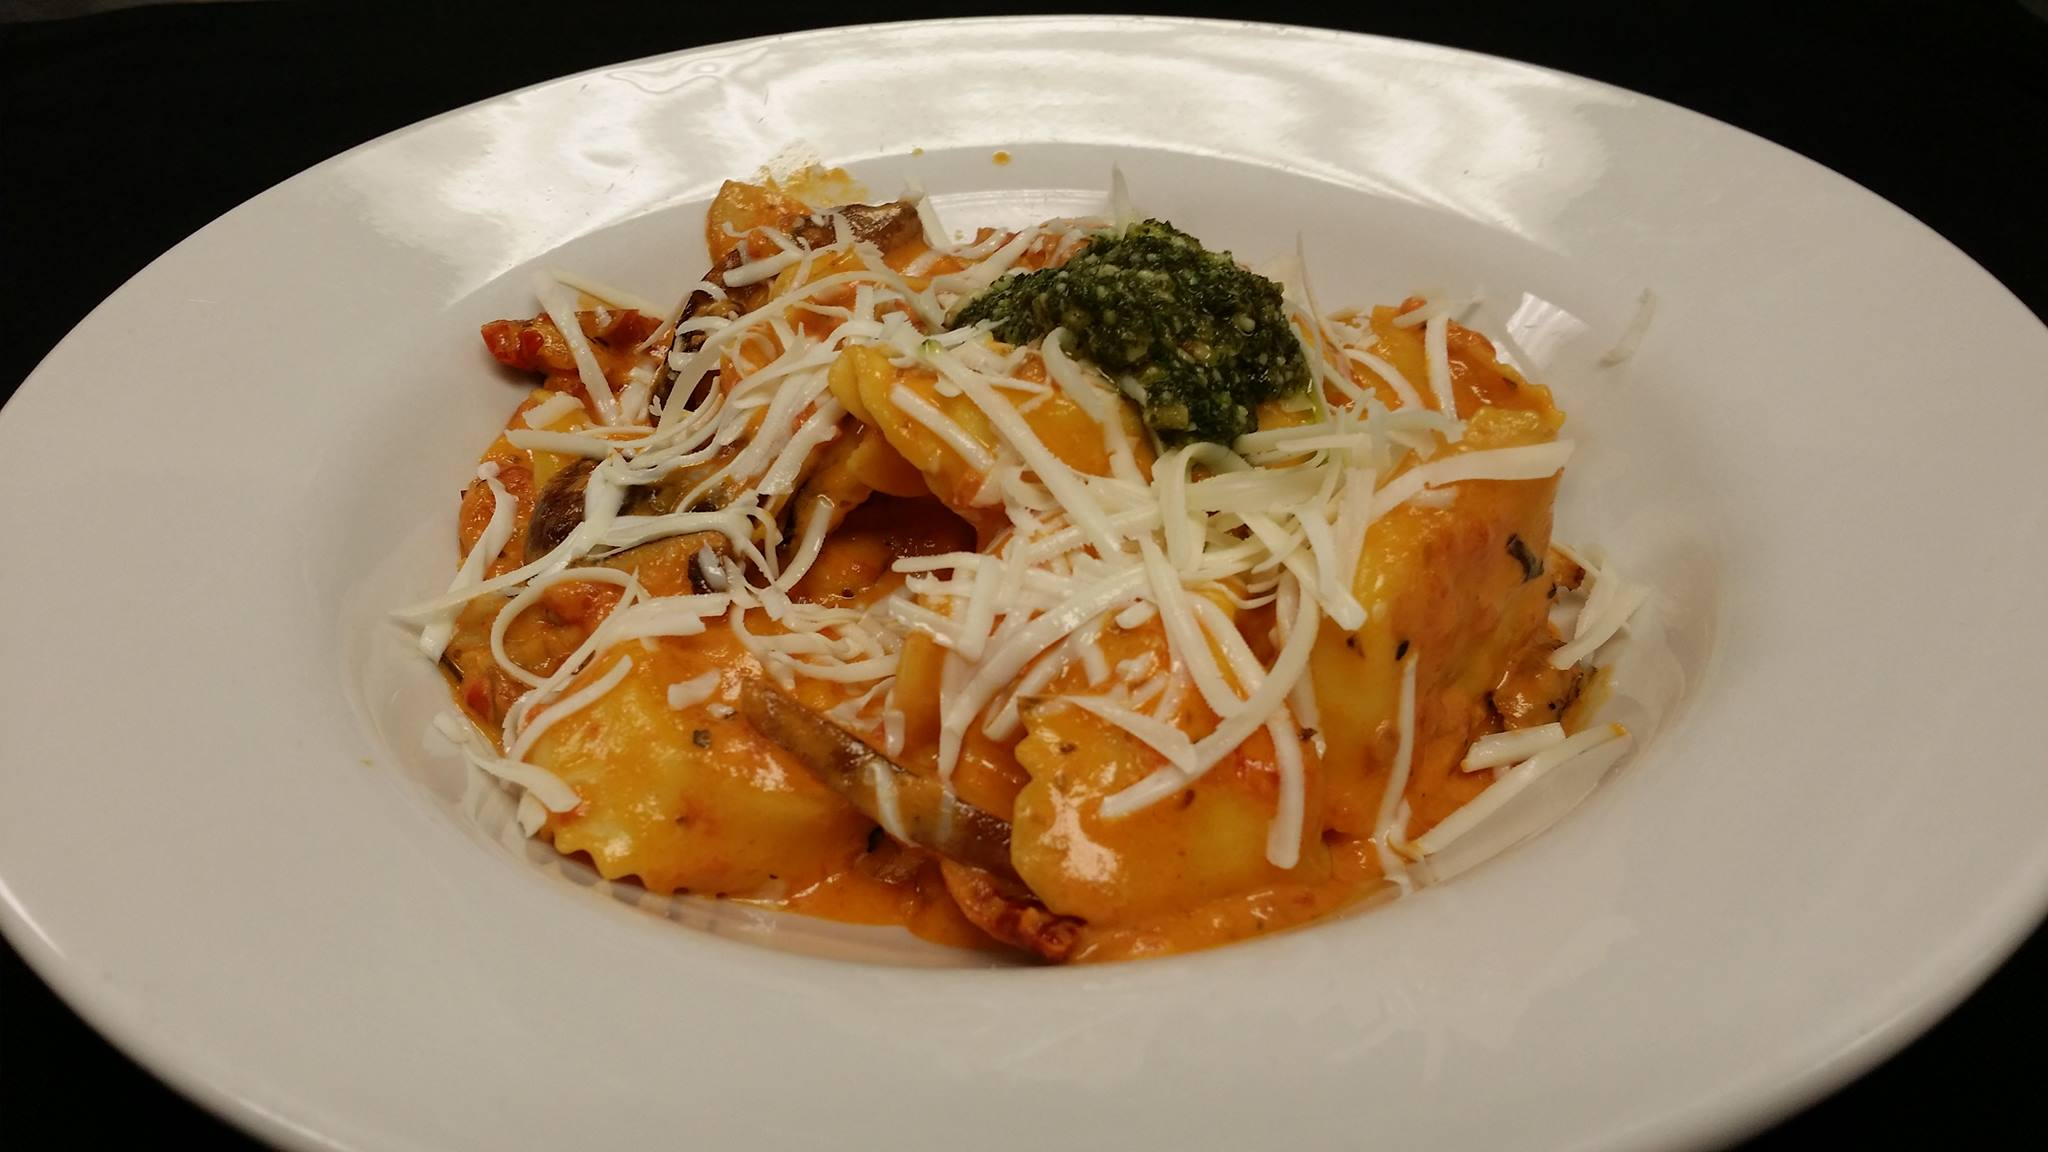 Cheese tortellini in rose sauce